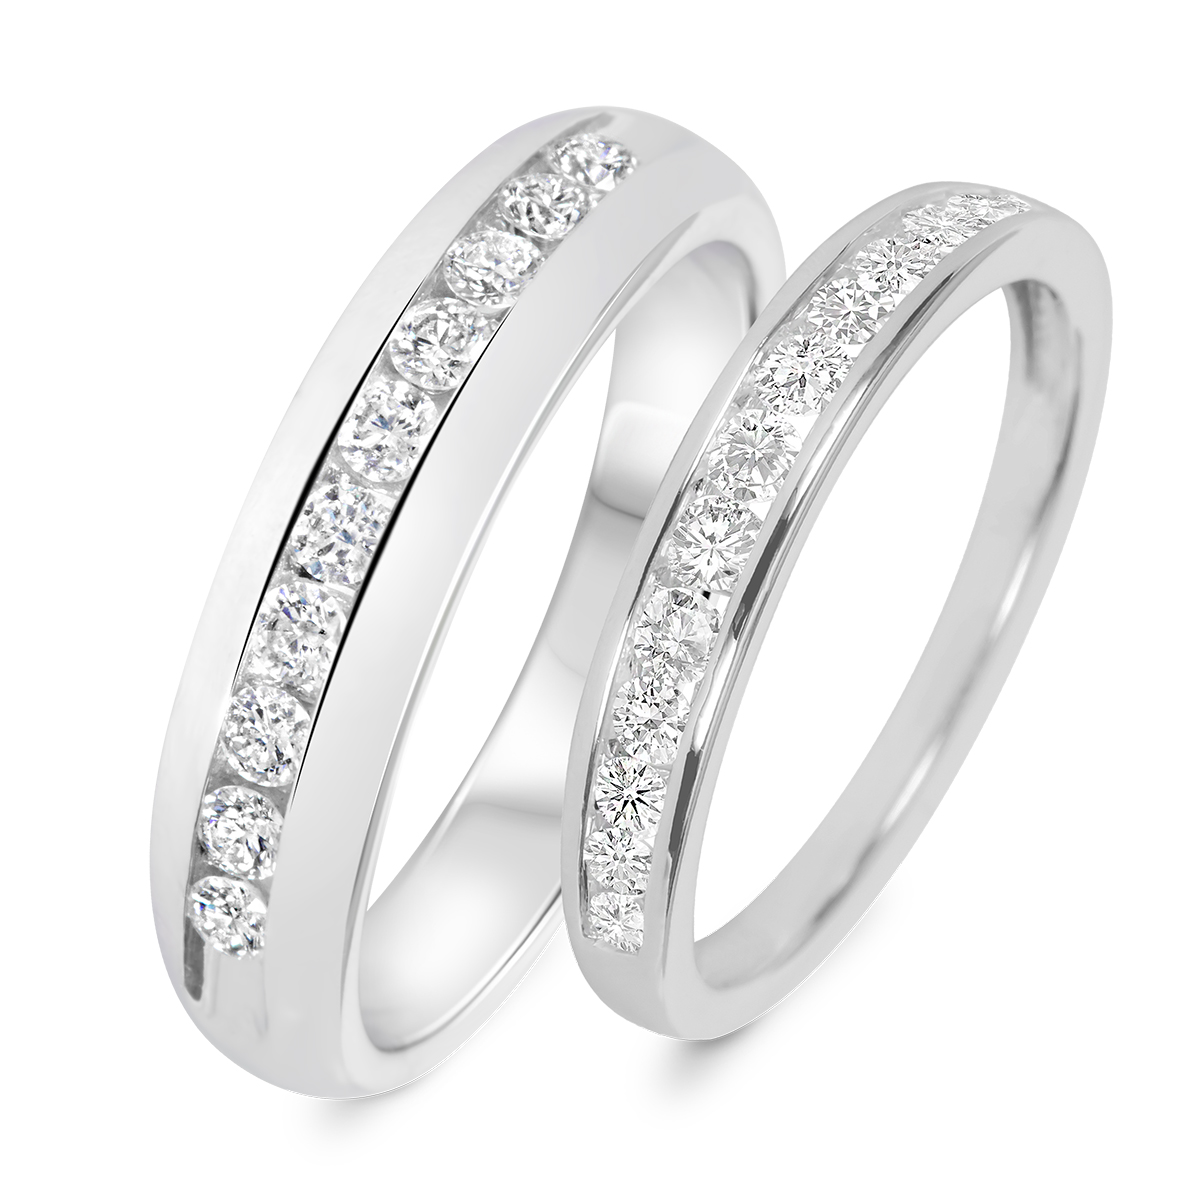 7 8 carat t w his and hers wedding band set 14k